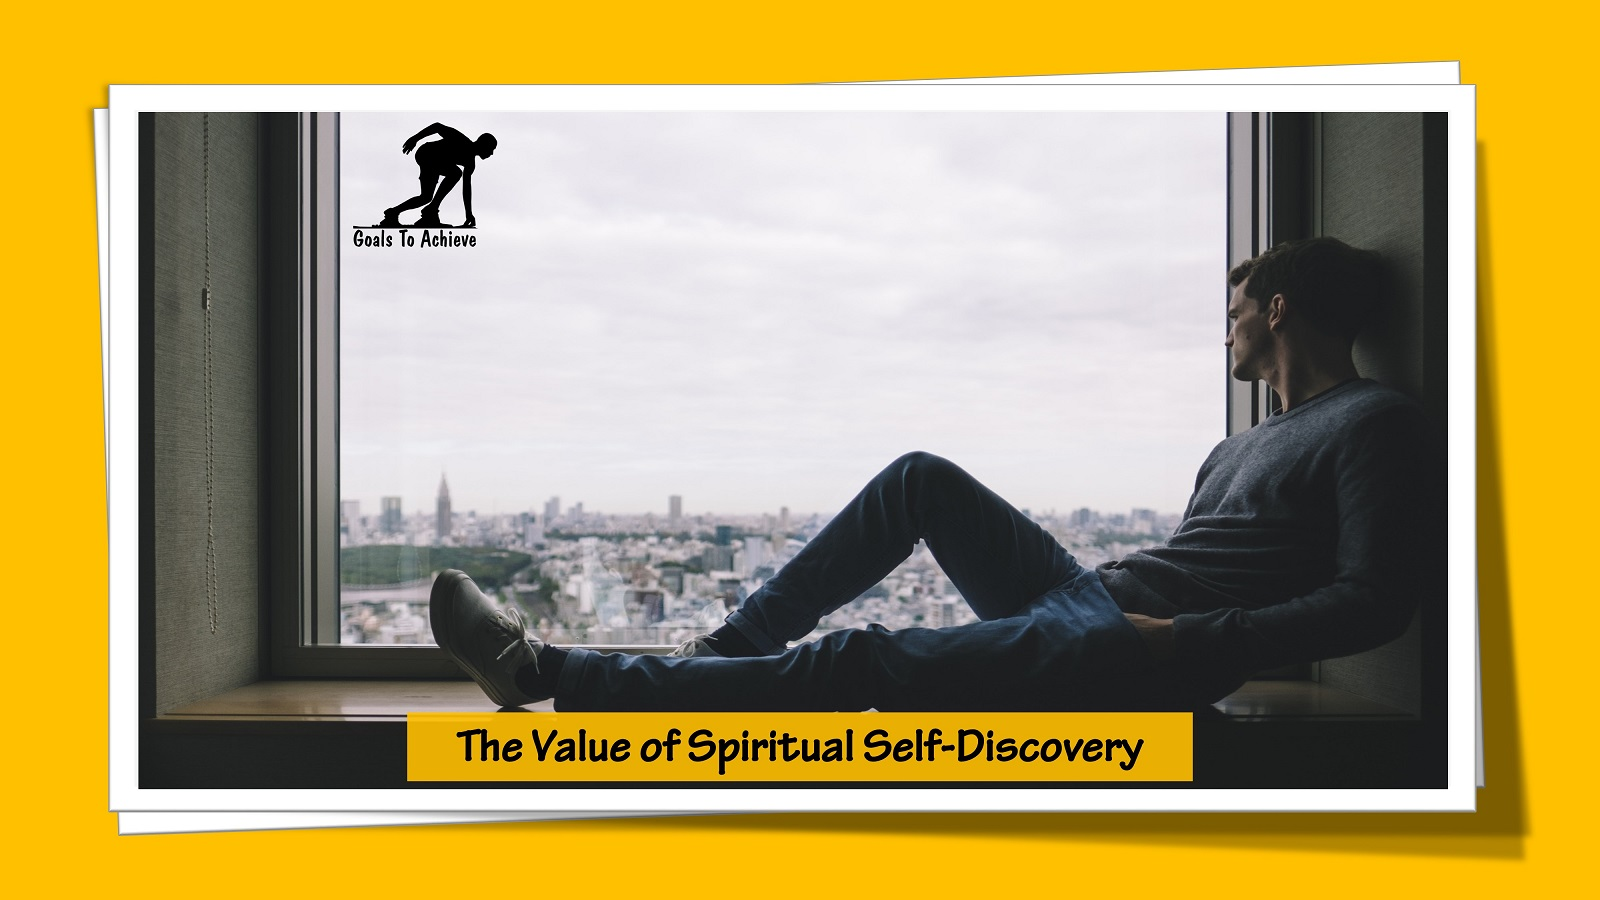 The Value of Spiritual Self-Discovery